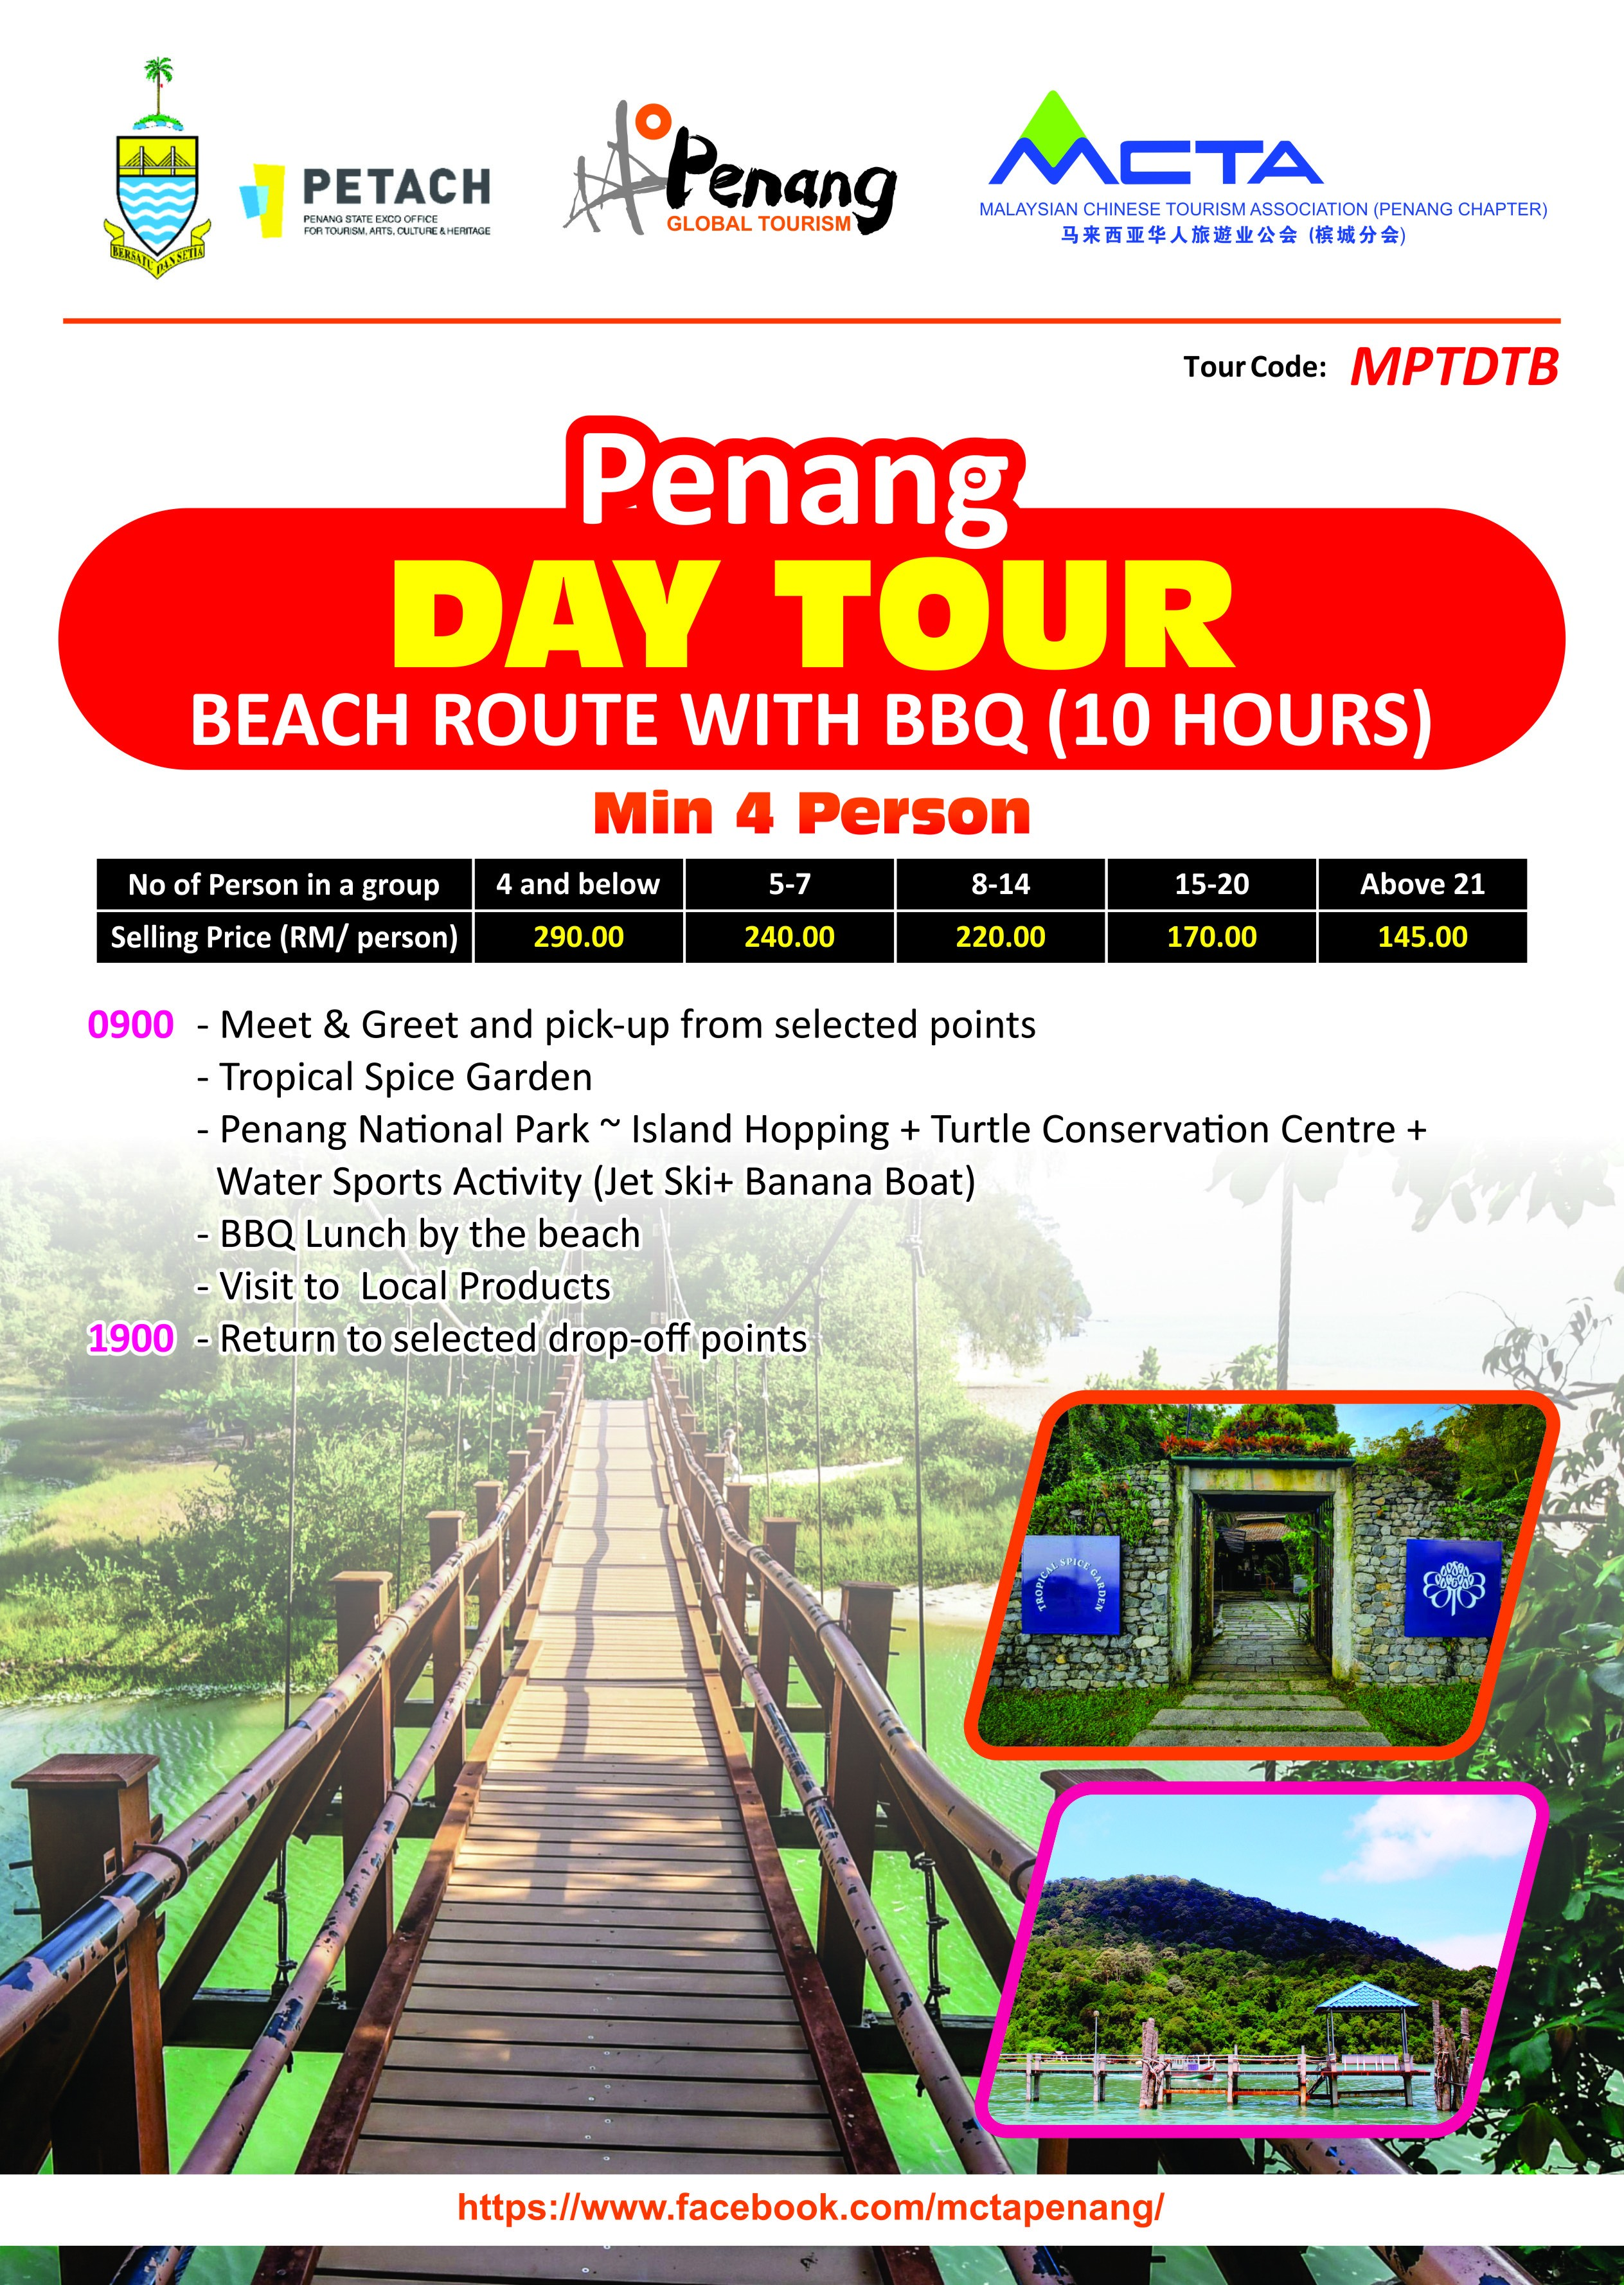 Penang Day Tour - Beach Route with BBQ (10 Hours)